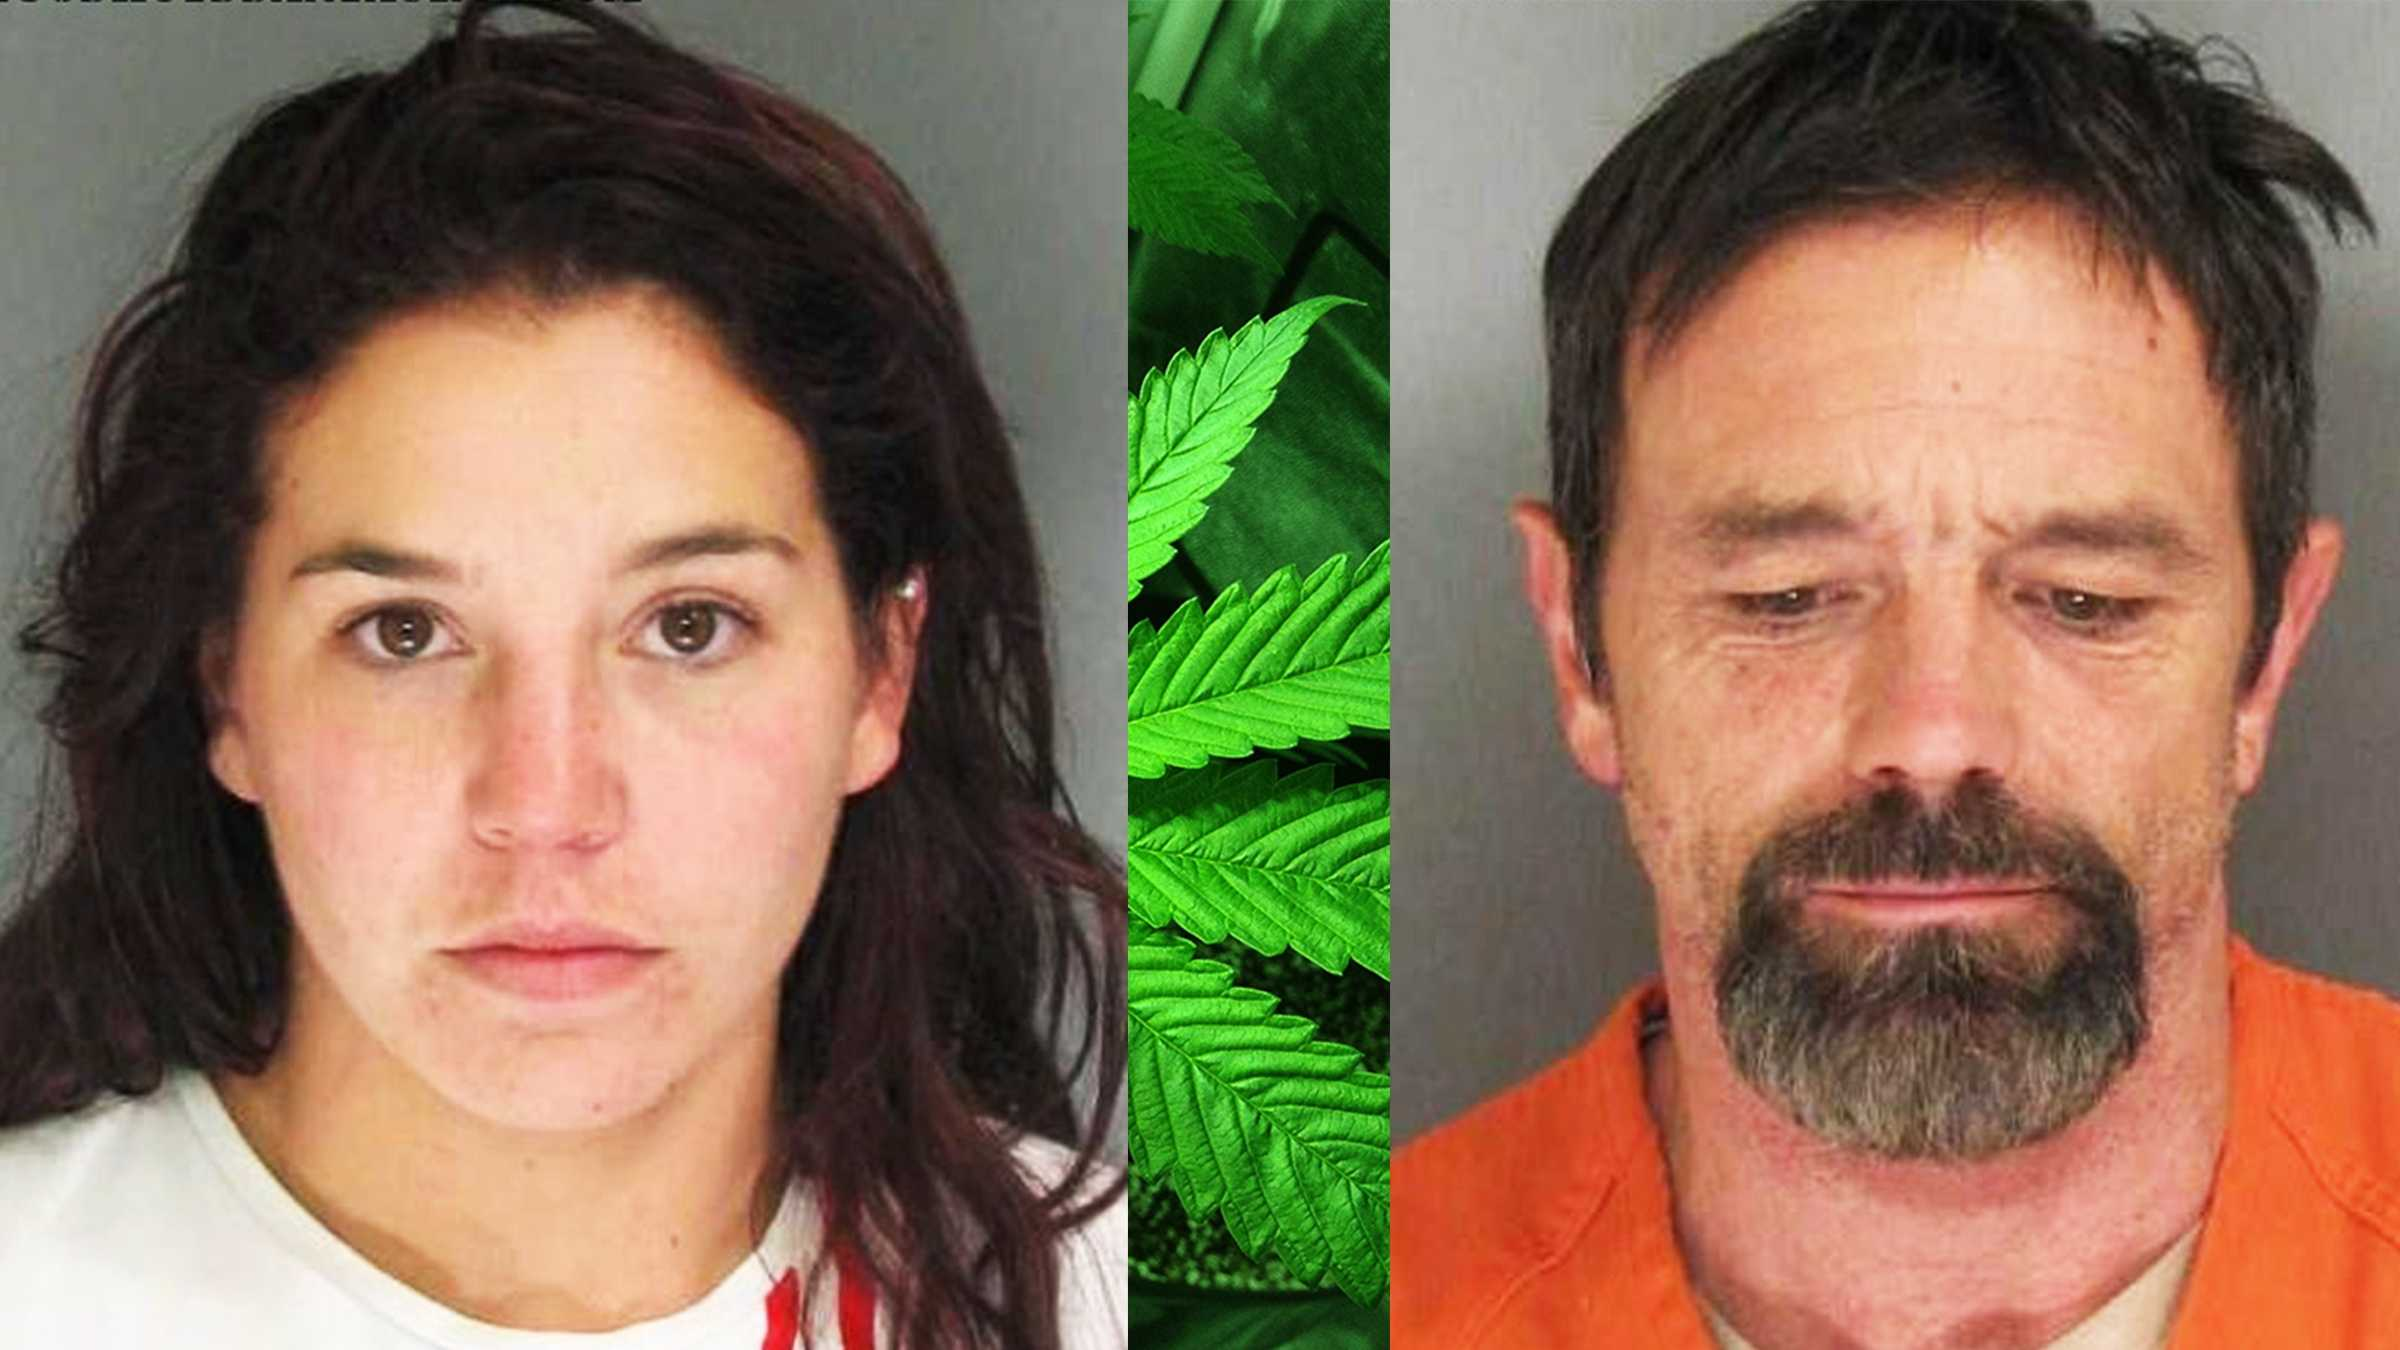 Bobbie Jean Pena, left, and William Kingsland, right, are seen in mug shots.